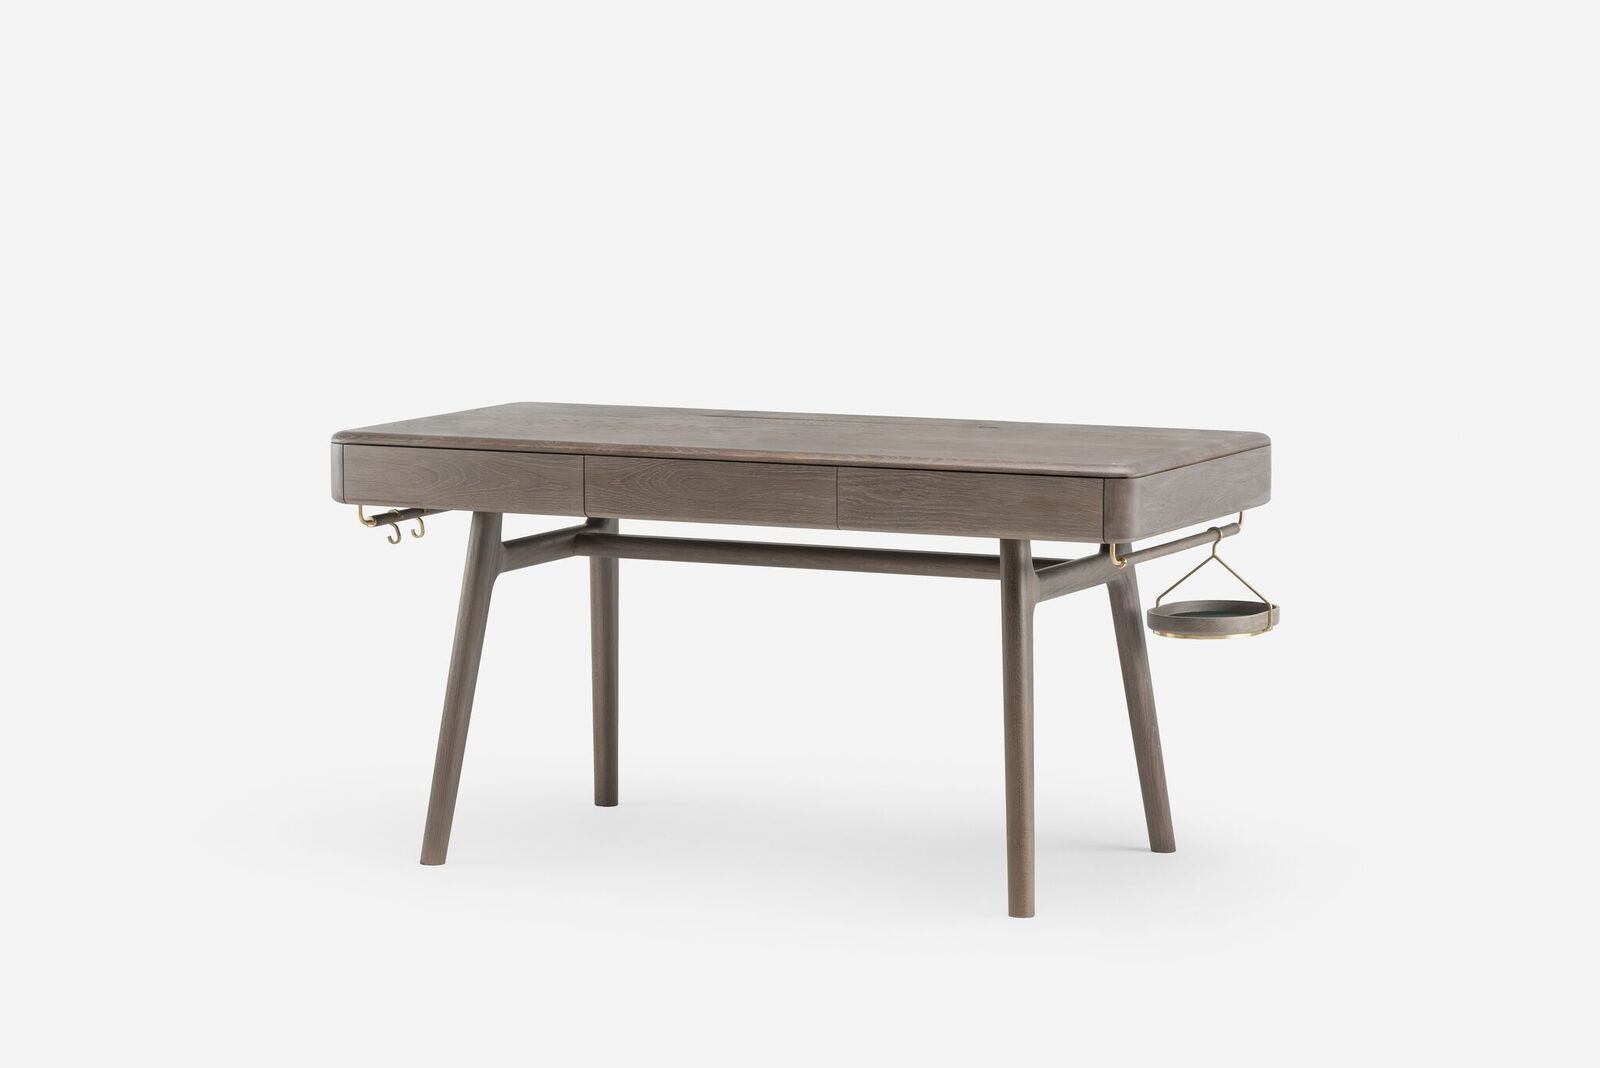 Solo Desk by Neri&Hu_preview.jpeg